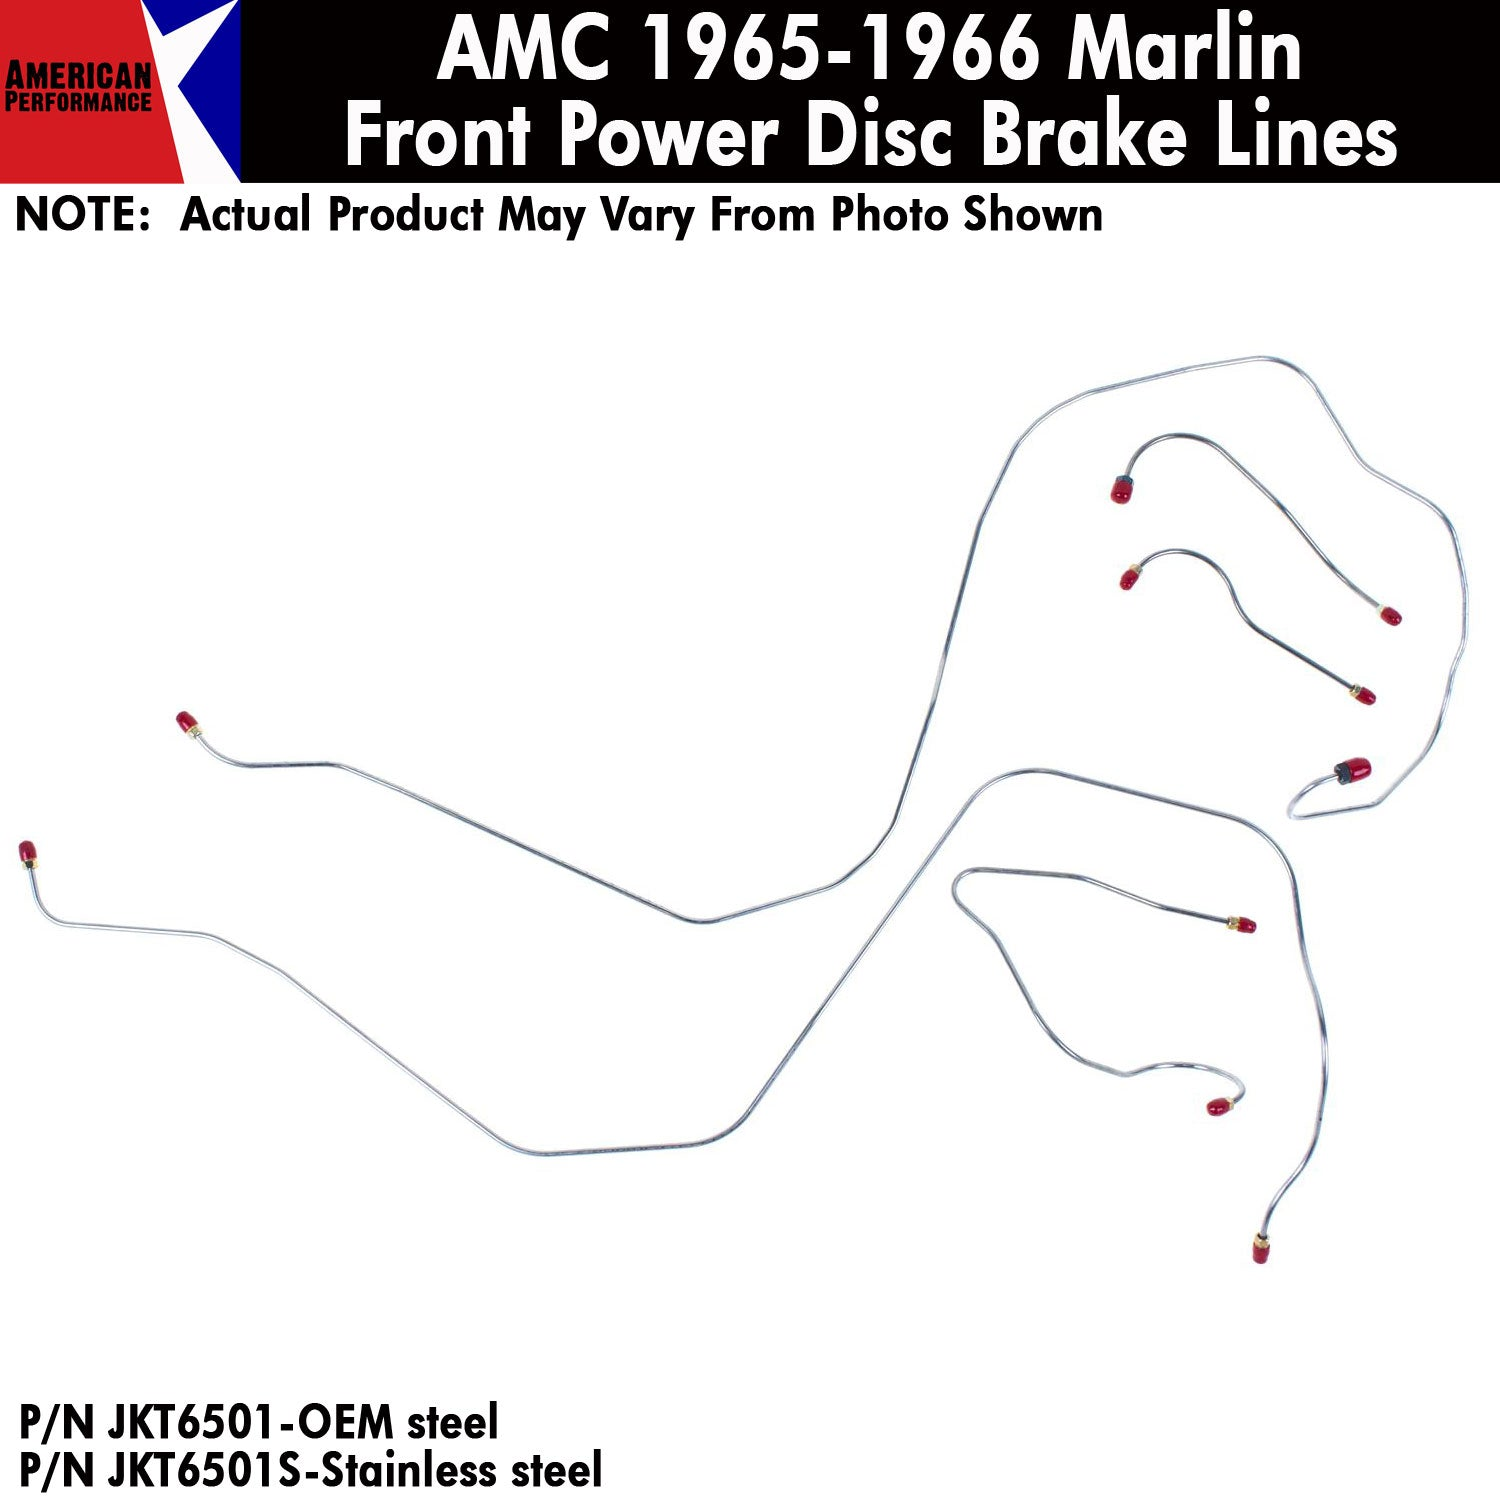 1965-1966 AMC Marlin Power Front Disc Brake Line 5-Piece